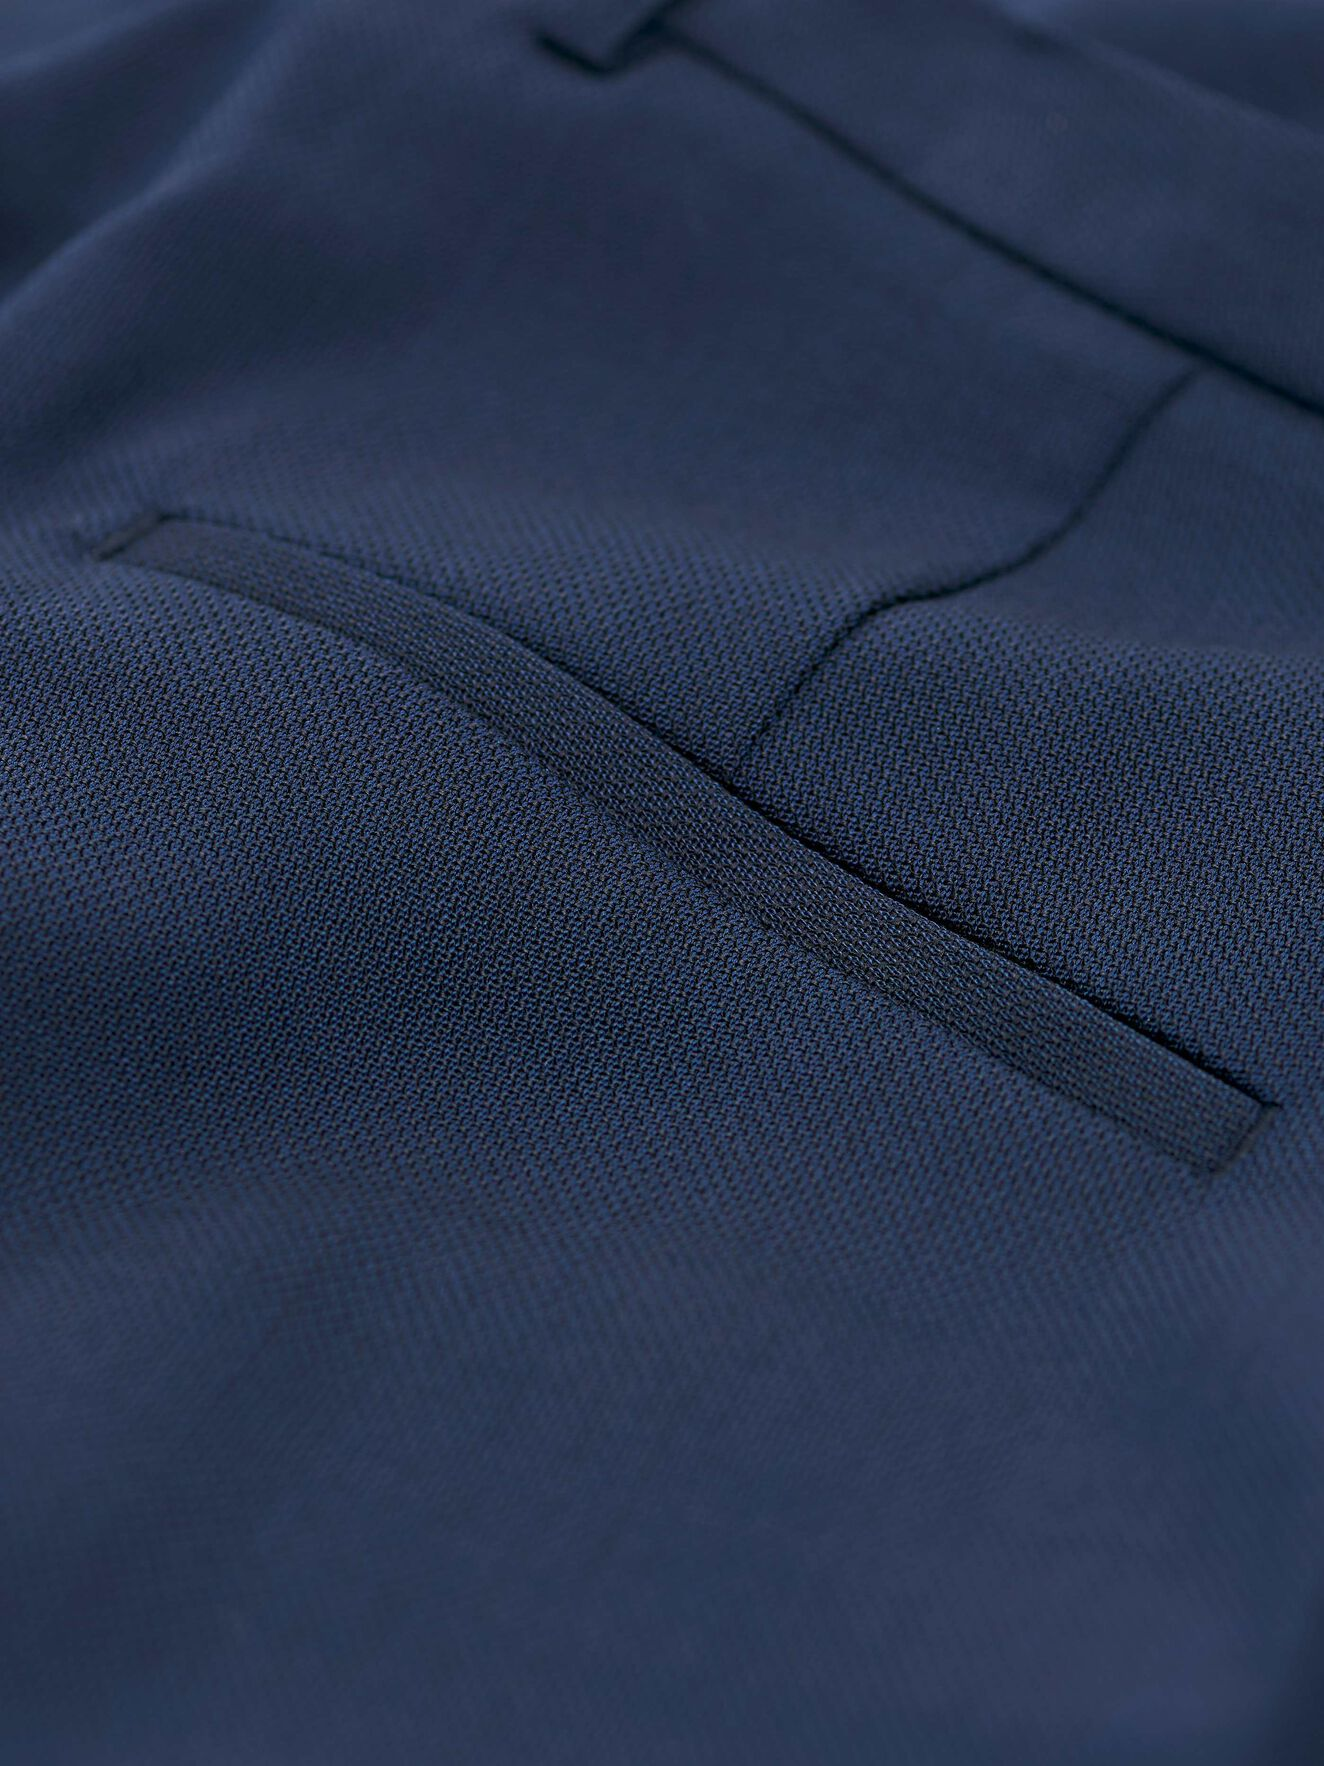 Lovann 5 Trousers in Peacoat Blue from Tiger of Sweden